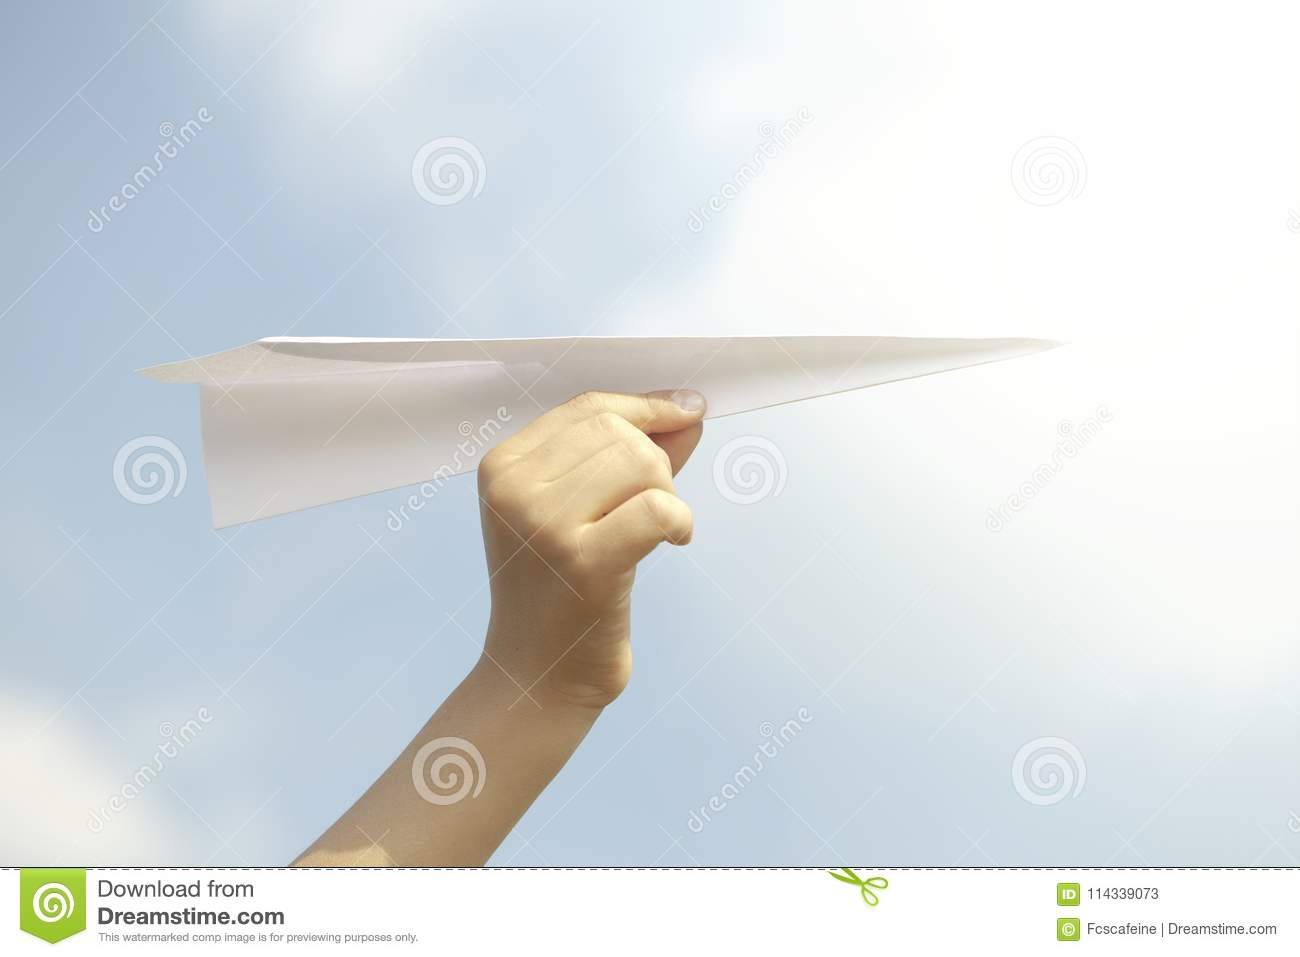 Dream concept of a person flying a paper plane in the sky